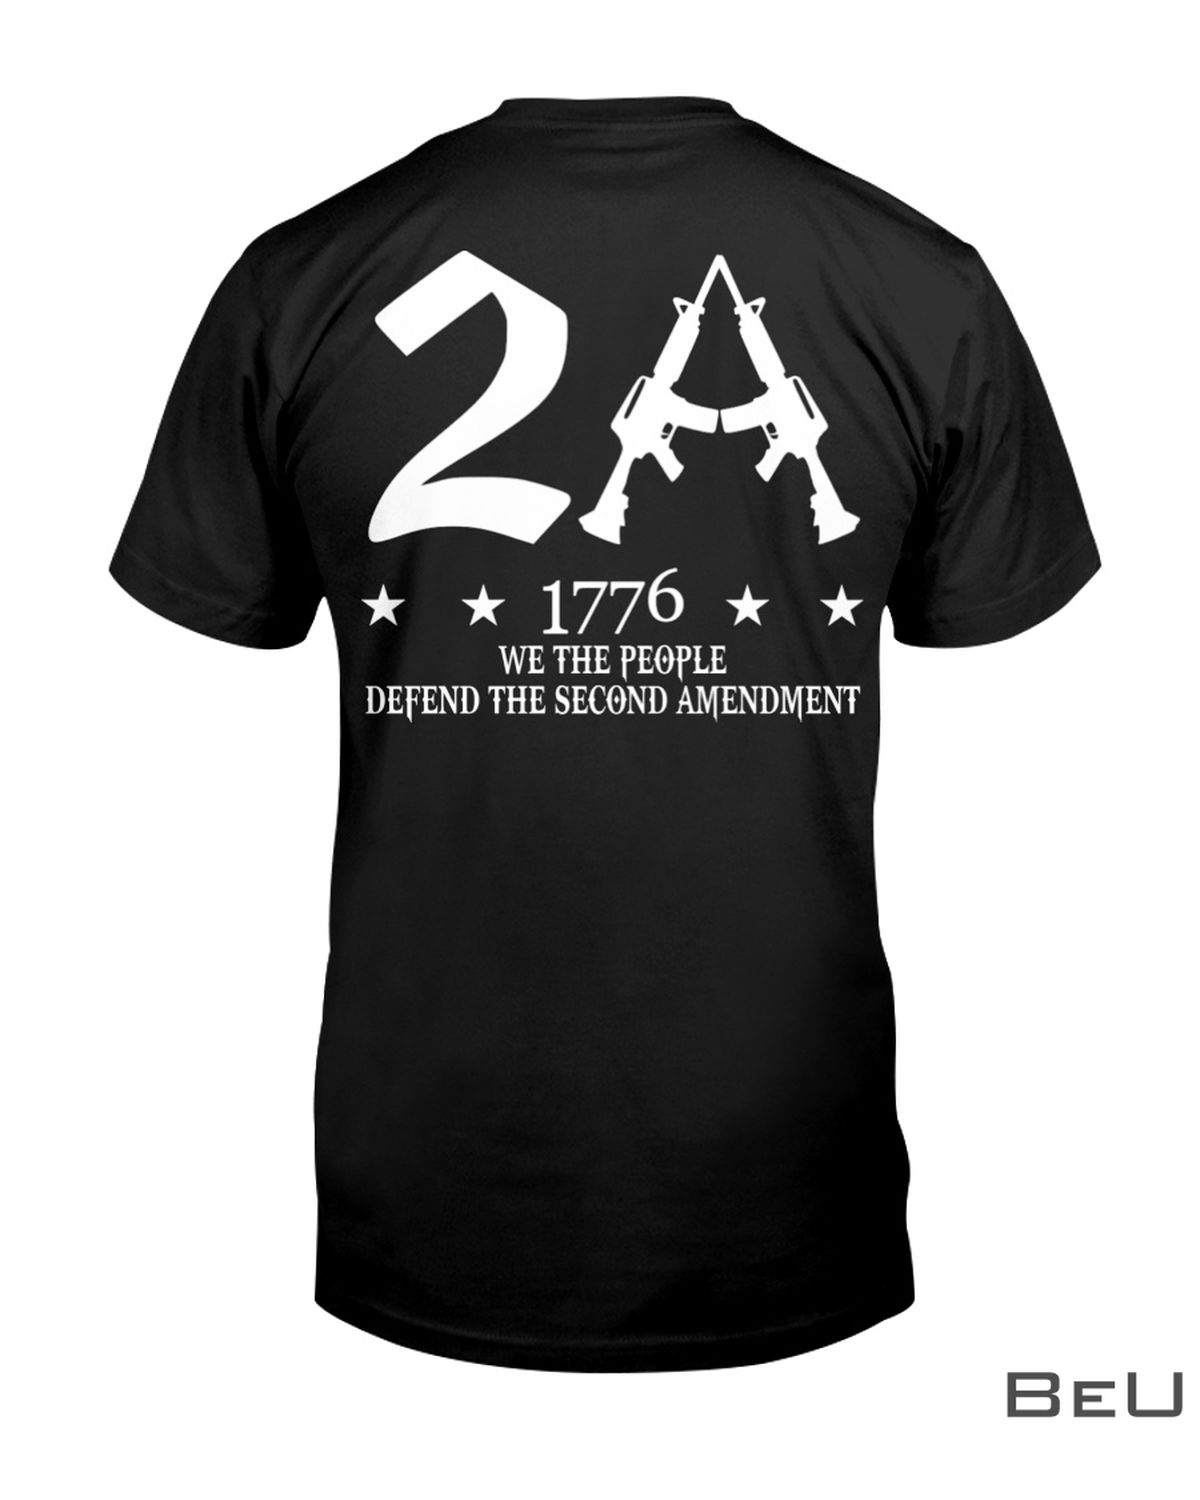 2A 1776 We The People Defend The Second Amendment Shirt, hoodie